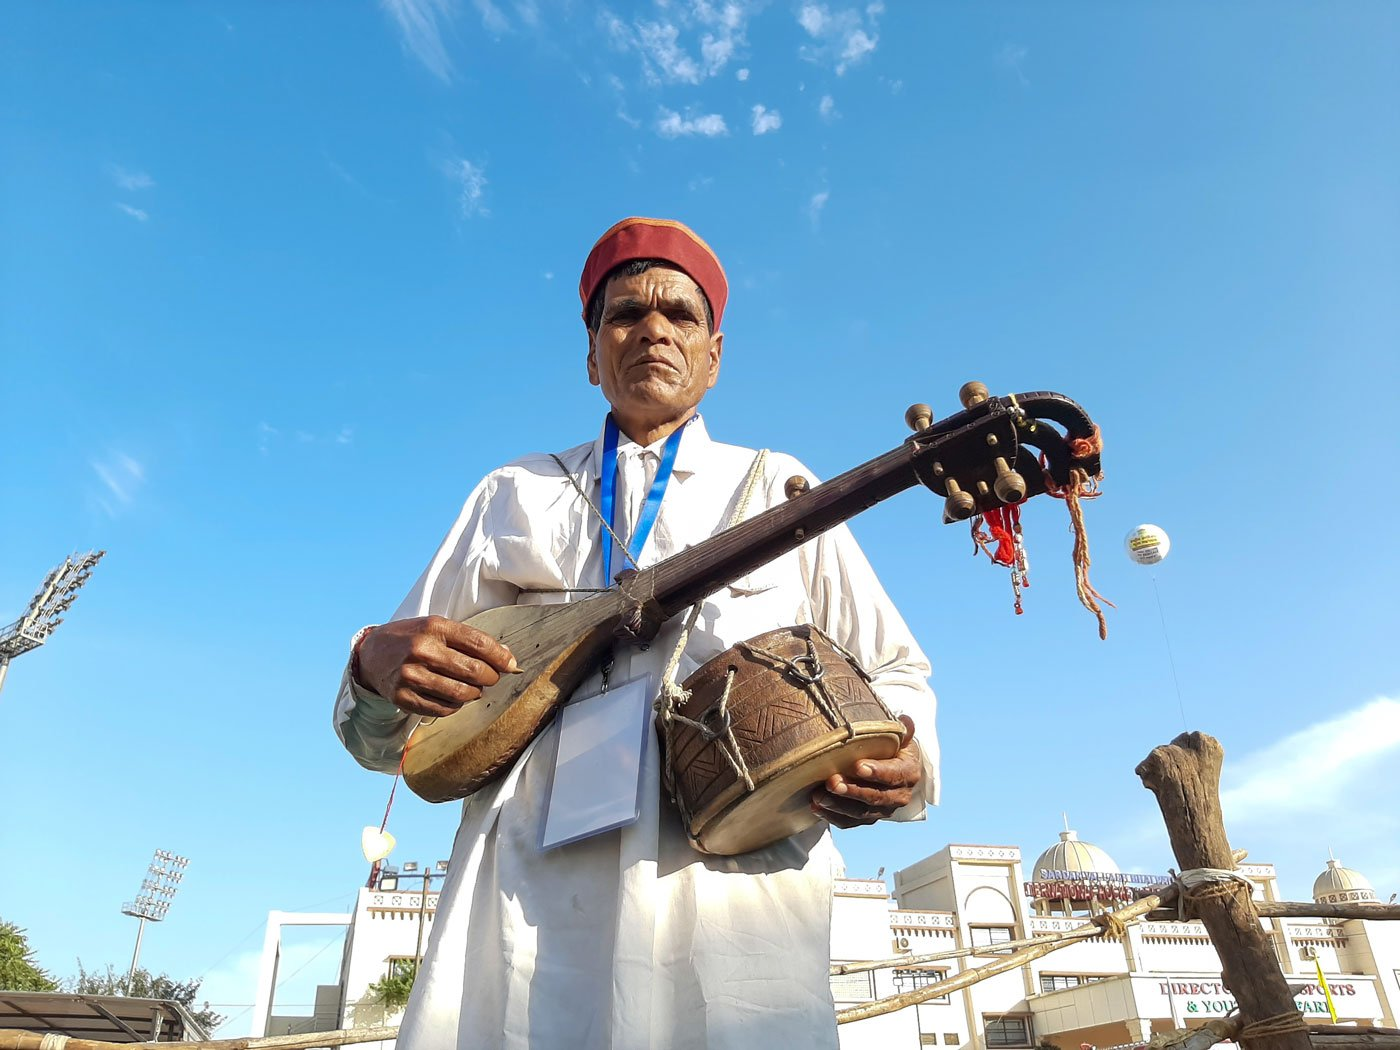 Premlal, a farmer-musician from Chamba district, performing at a recent festival